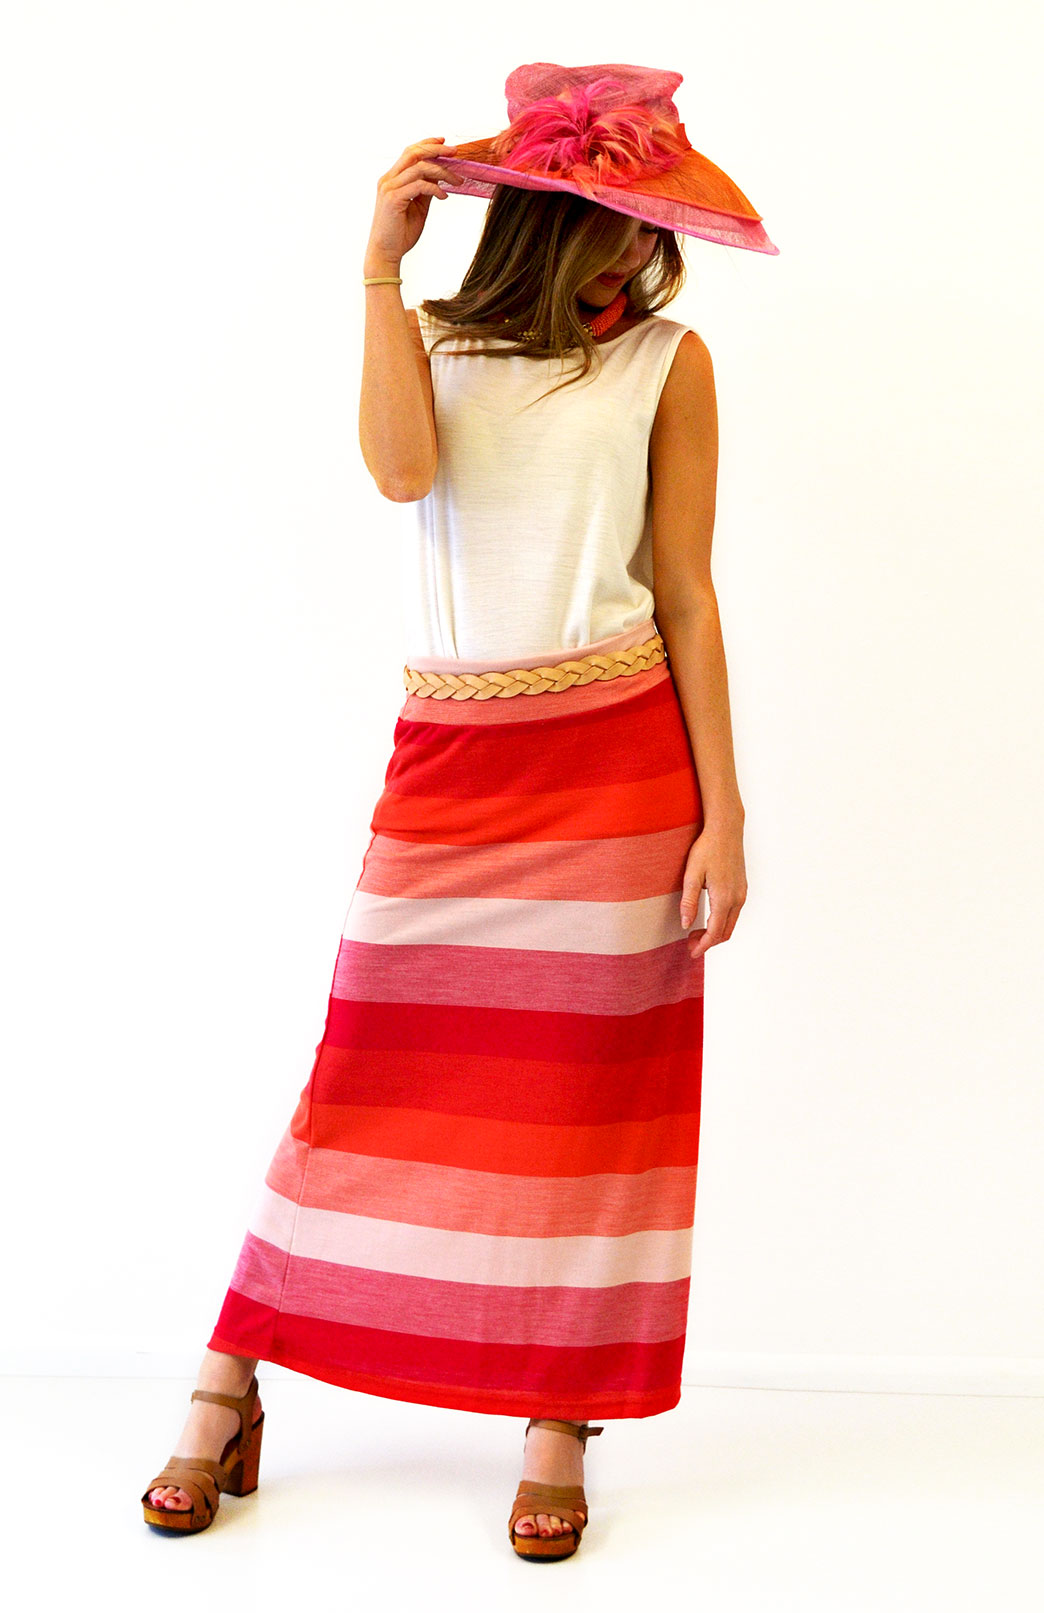 Maxi Skirt - Multi Stripe - Women's Pink and Orange Stripe Wool Maxi Skirt with elastic waistband - Smitten Merino Tasmania Australia